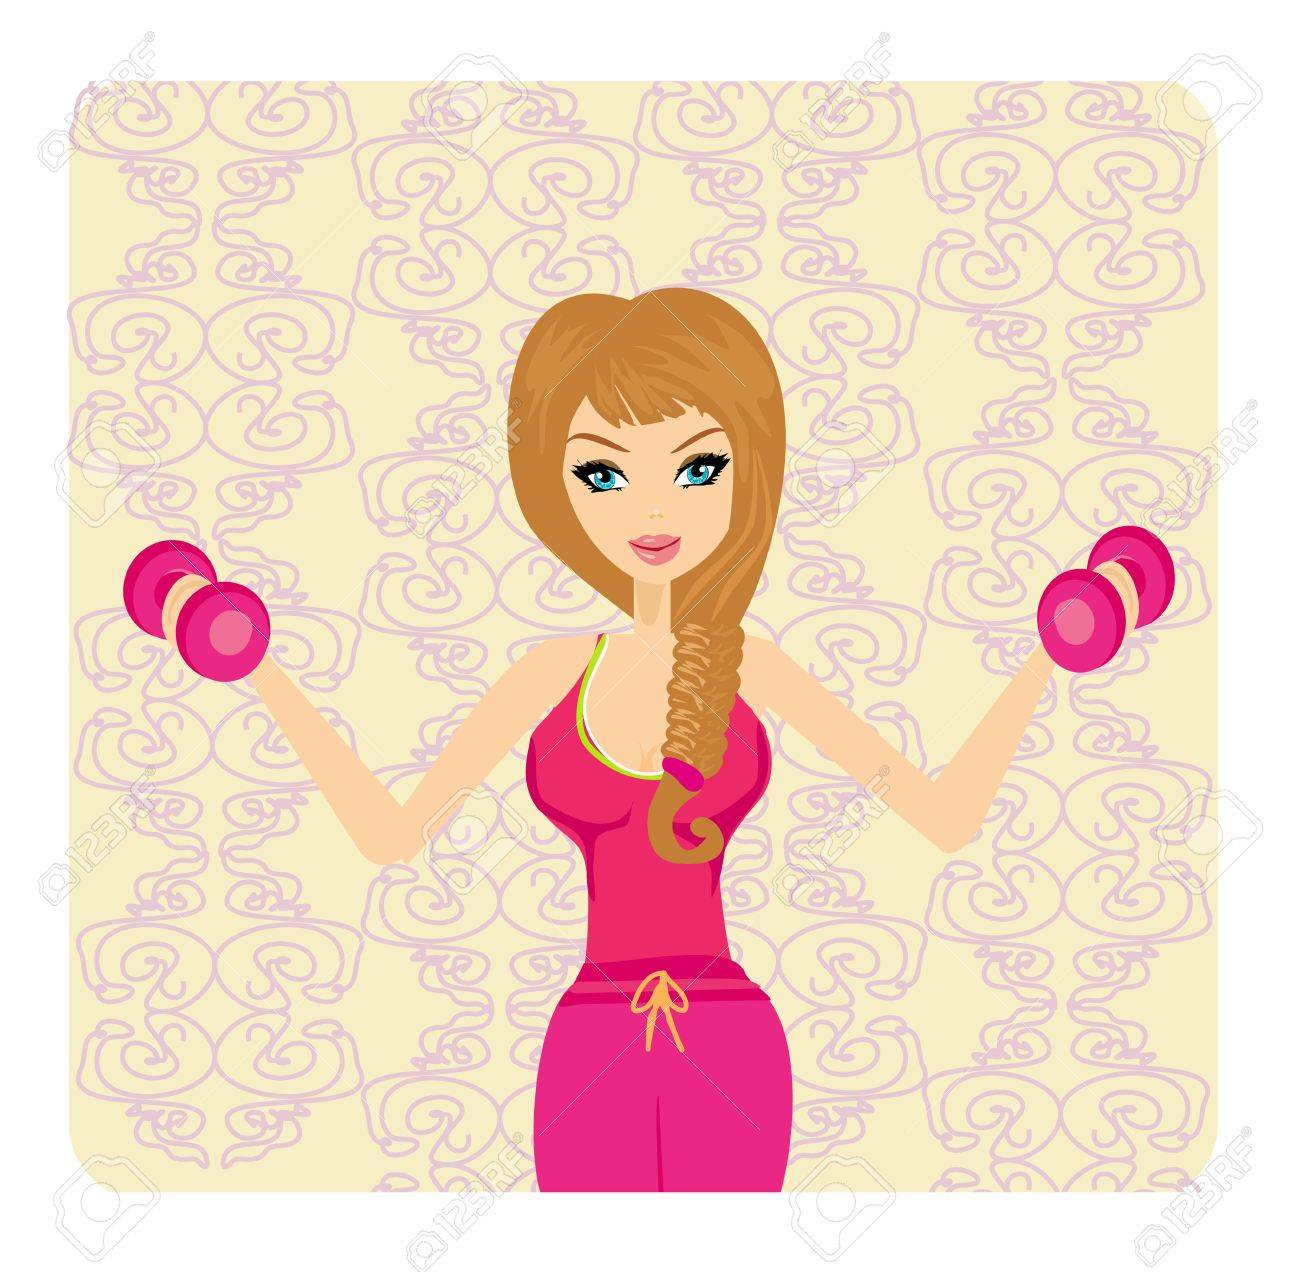 fit woman exercising with two dumbbell weights on her hands - 15351147